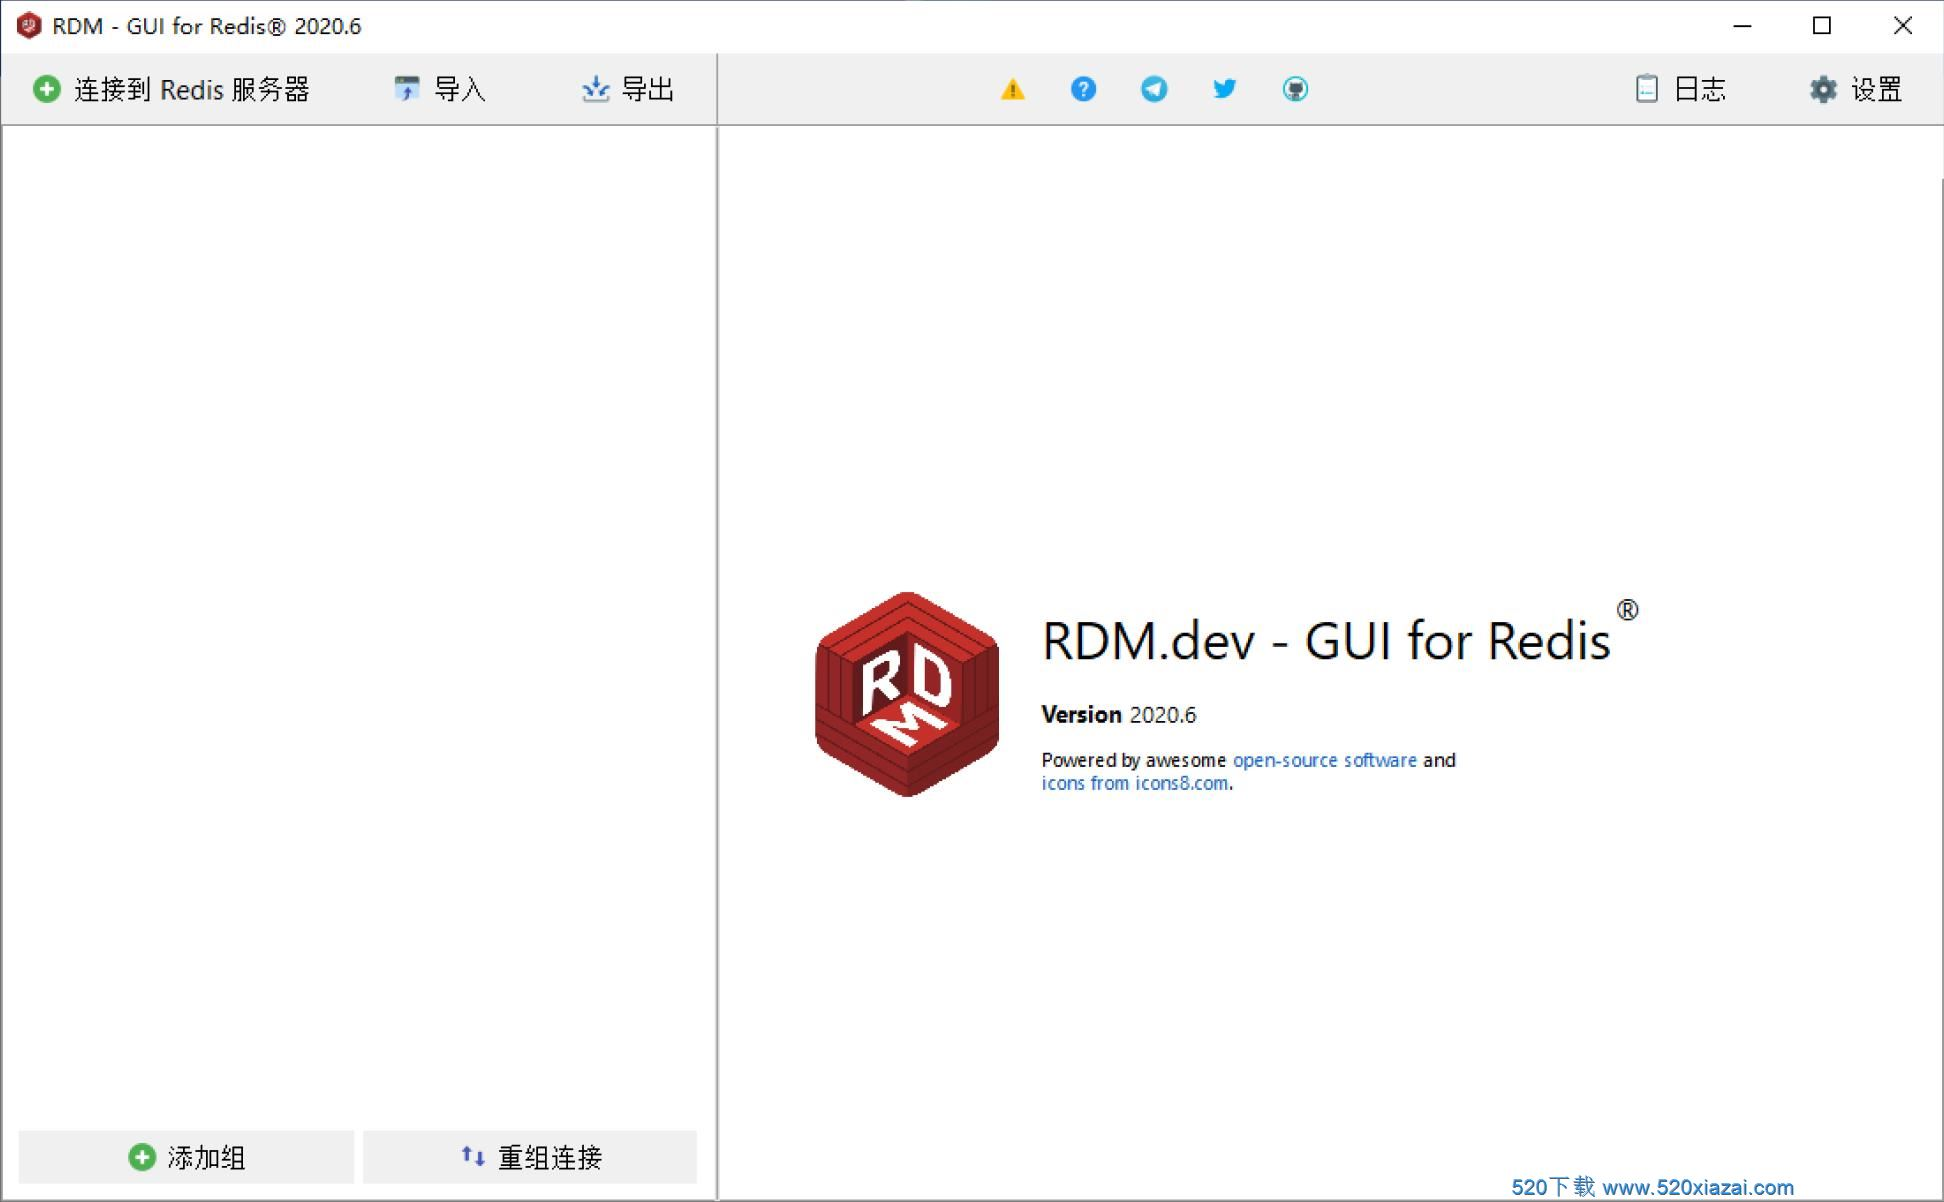 Redis Desktop Manager2020.6 RDM2020.6中文版